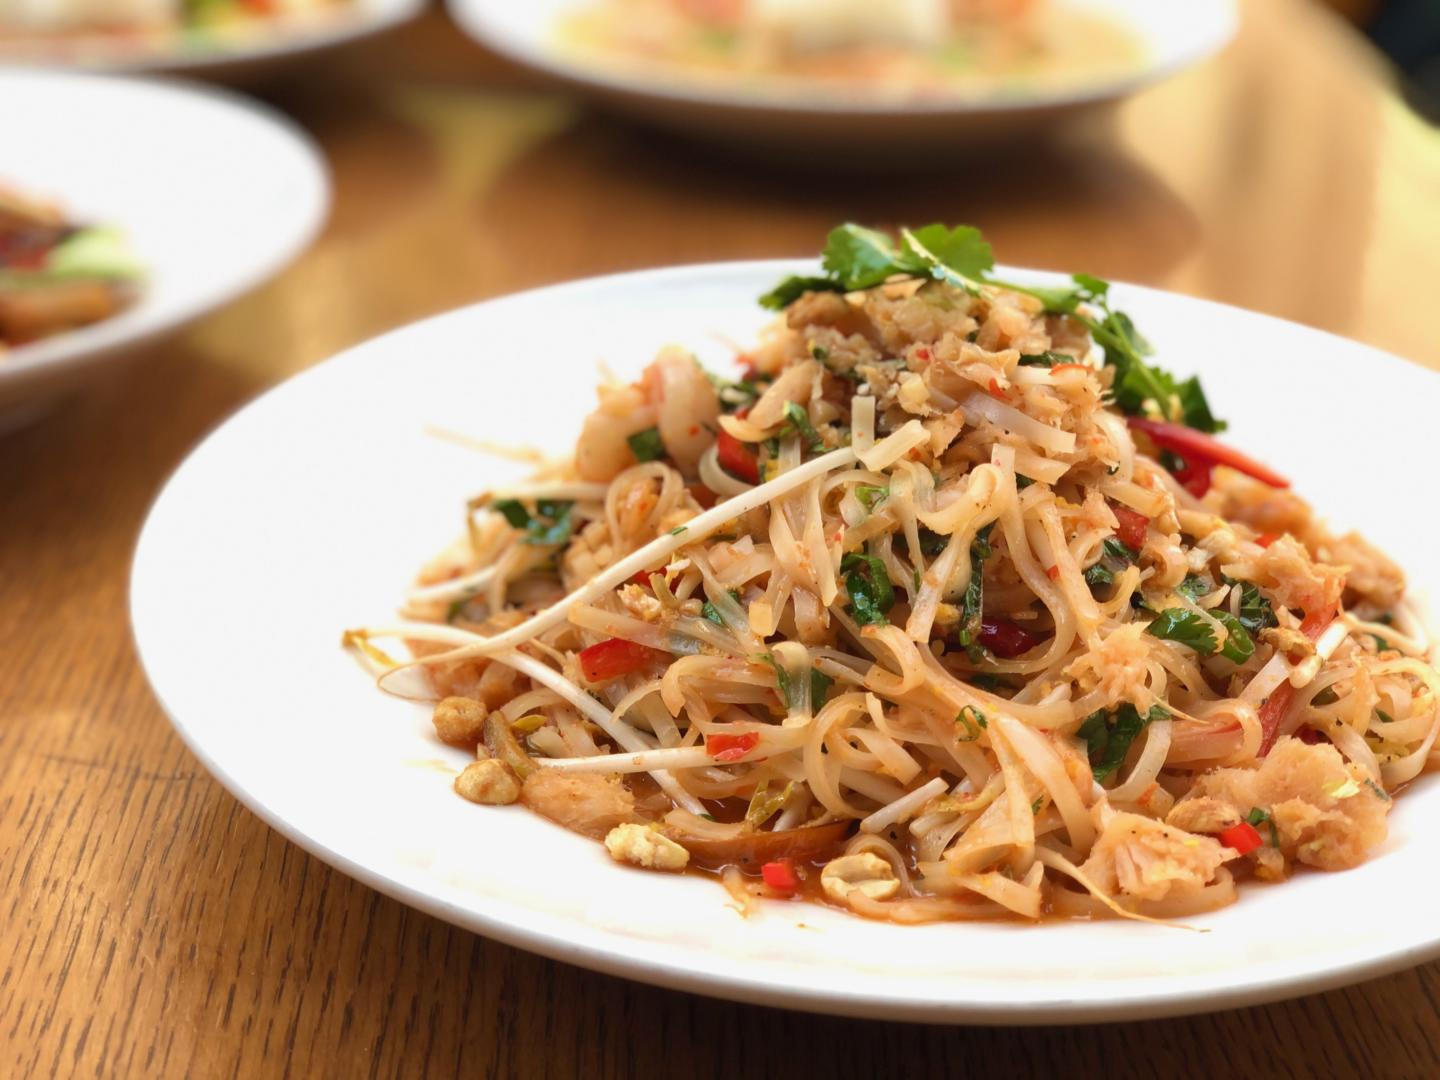 Noodle dish from VTK